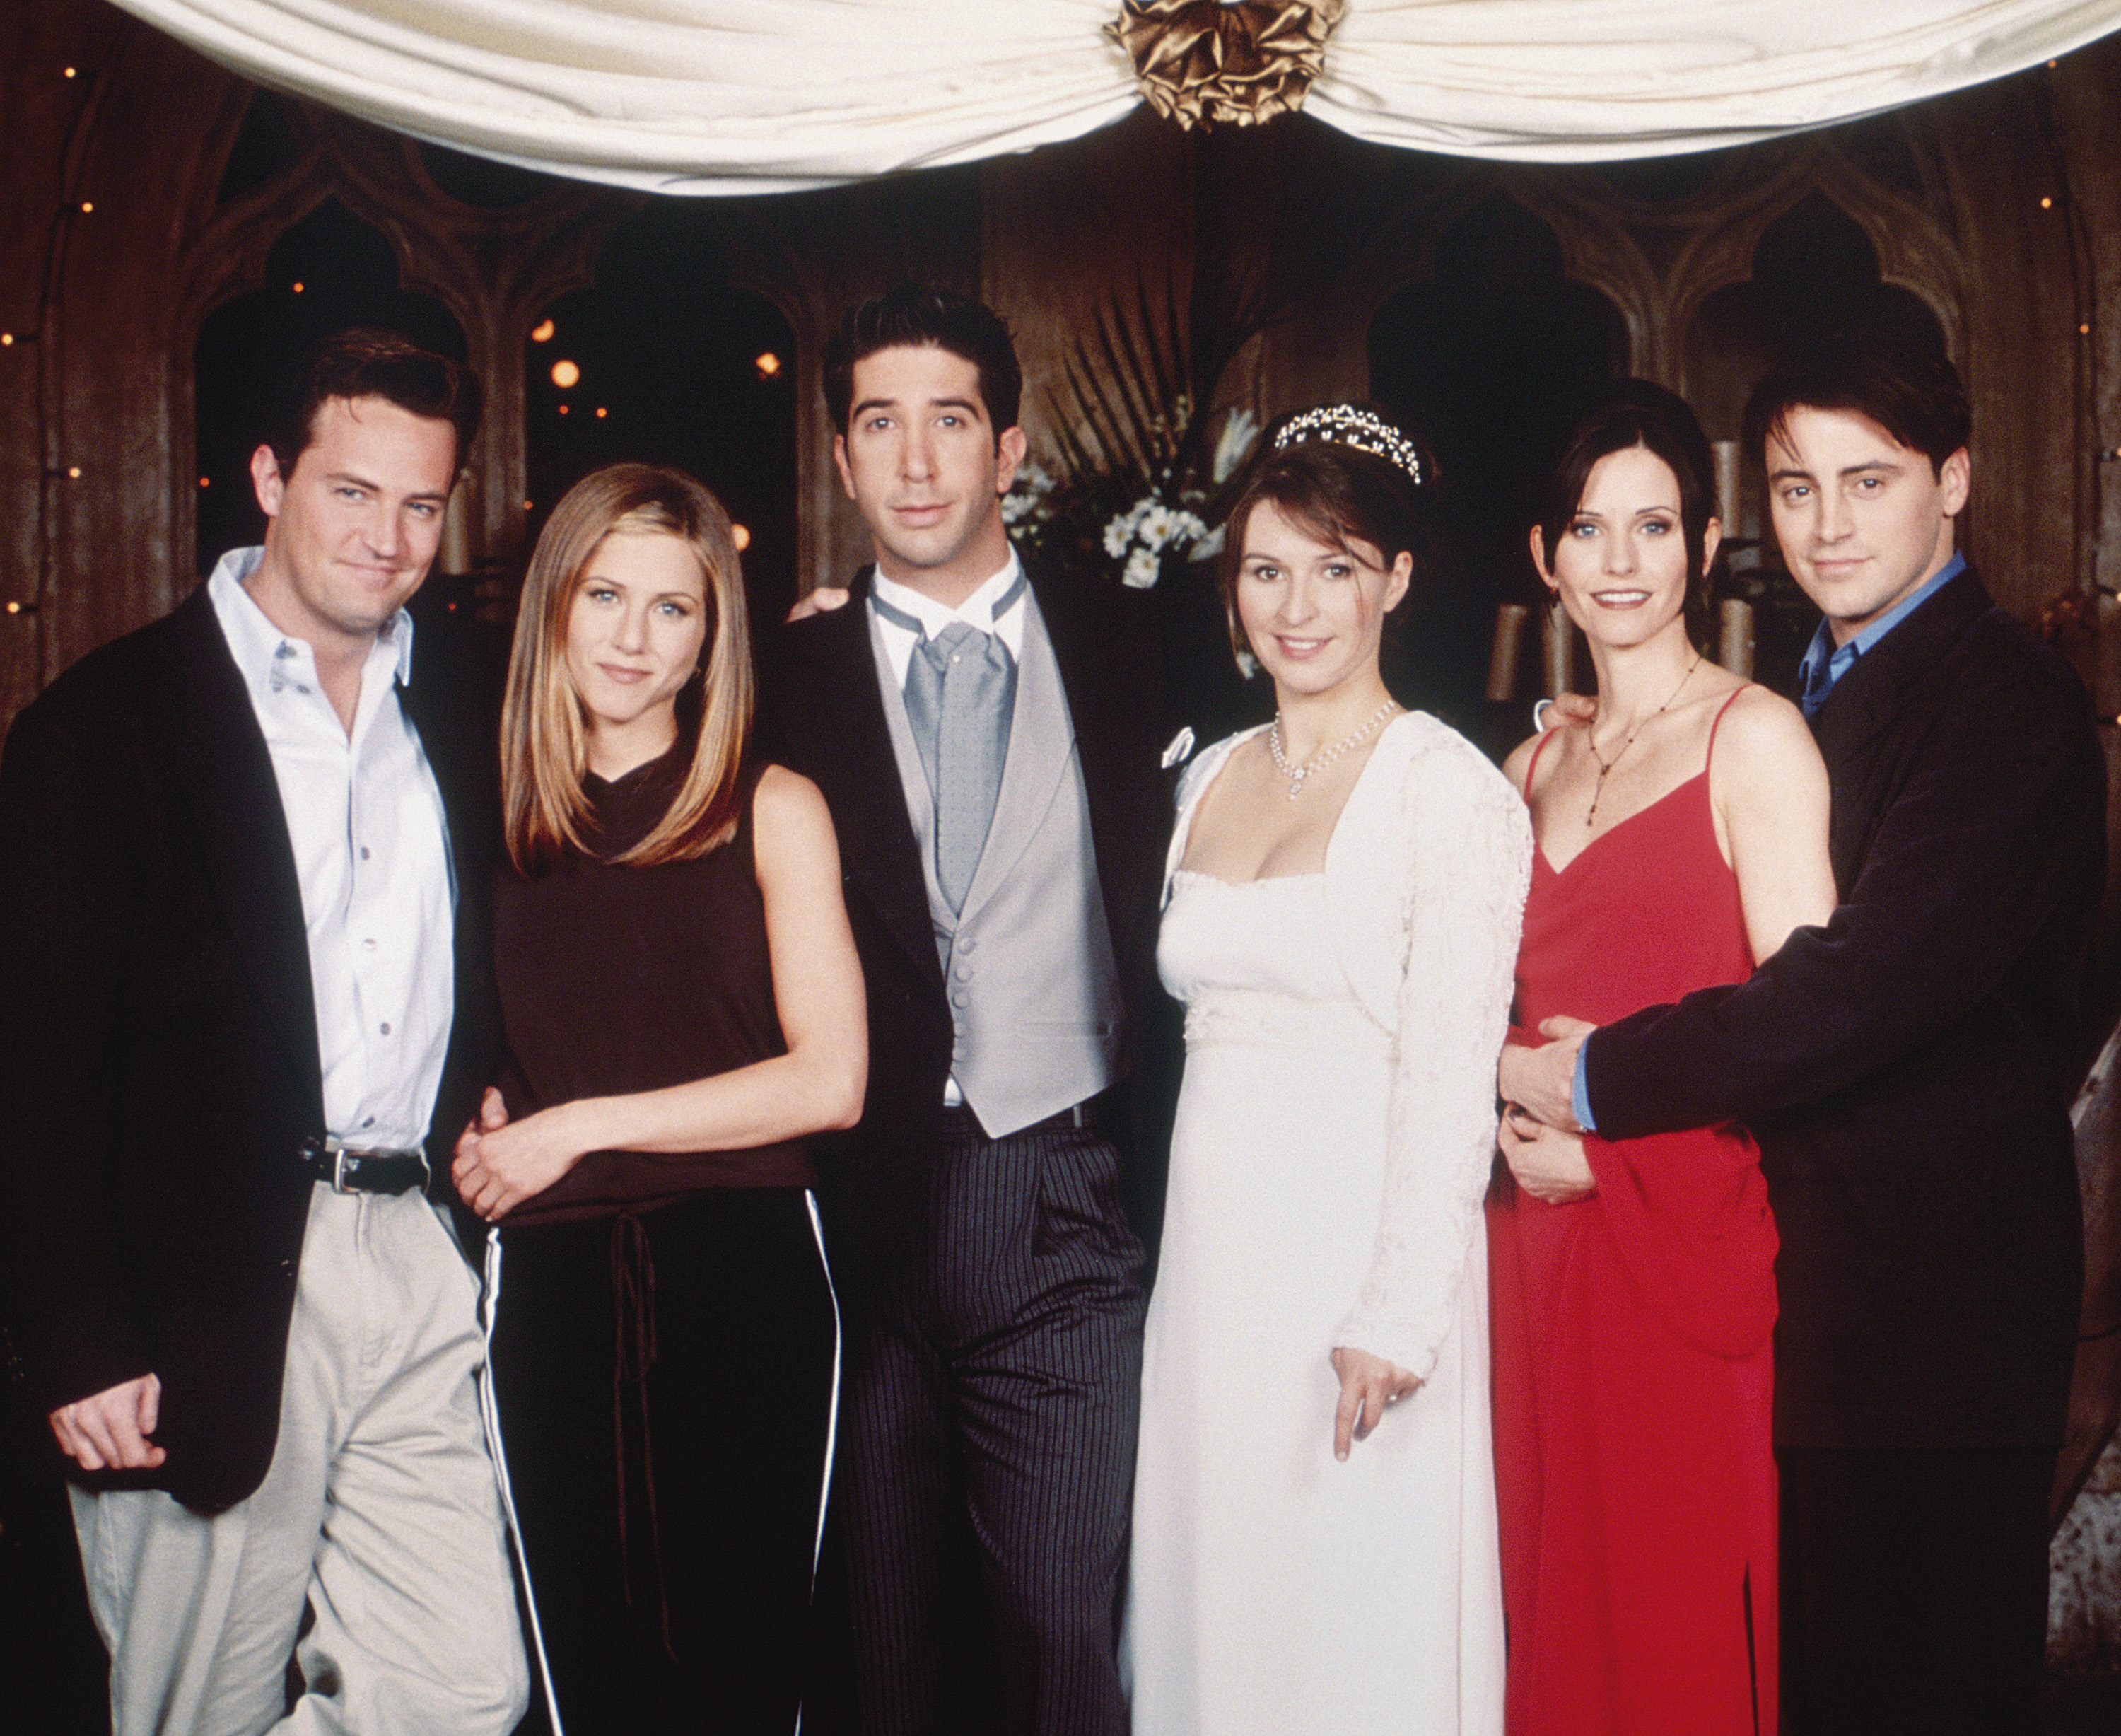 "FRIENDS -- ""The One with Ross's Wedding: Part 2"" Episode 24 -- Pictured: (l-r) Matthew Perry as Chandler Bing, Jennifer Aniston as Rachel Green, David Schwimmer as Ross Geller, Helen Baxendale as Emily Waltham, Courteney Cox as Monica Geller, Matt LeBlanc as Joey Tribbiani (Photo by Oliver Upton/NBC/NBCU Photo Bank via Getty Images)"